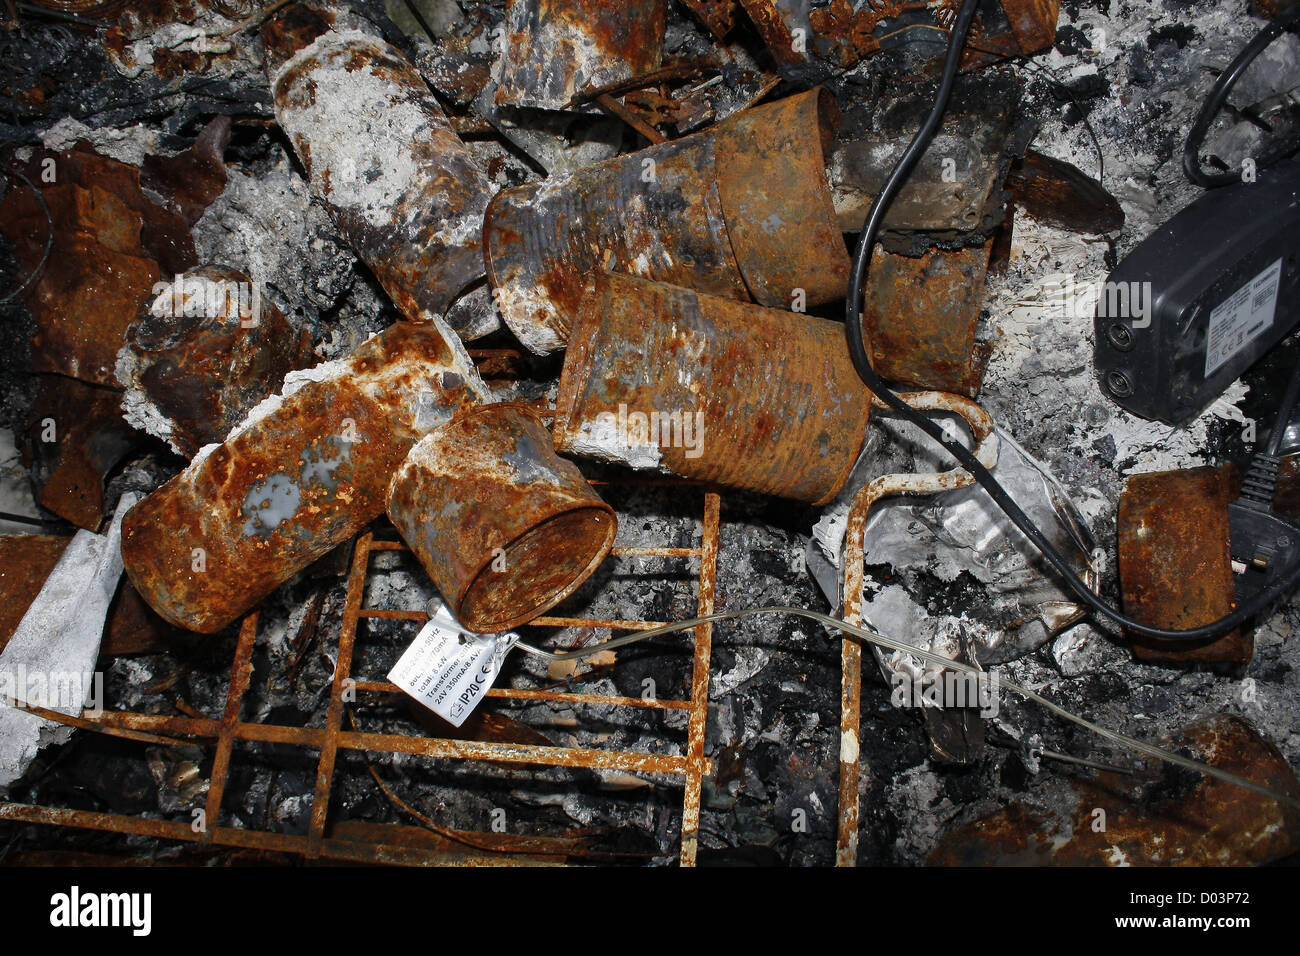 burnt tin cans in old shopping trolley - Stock Image